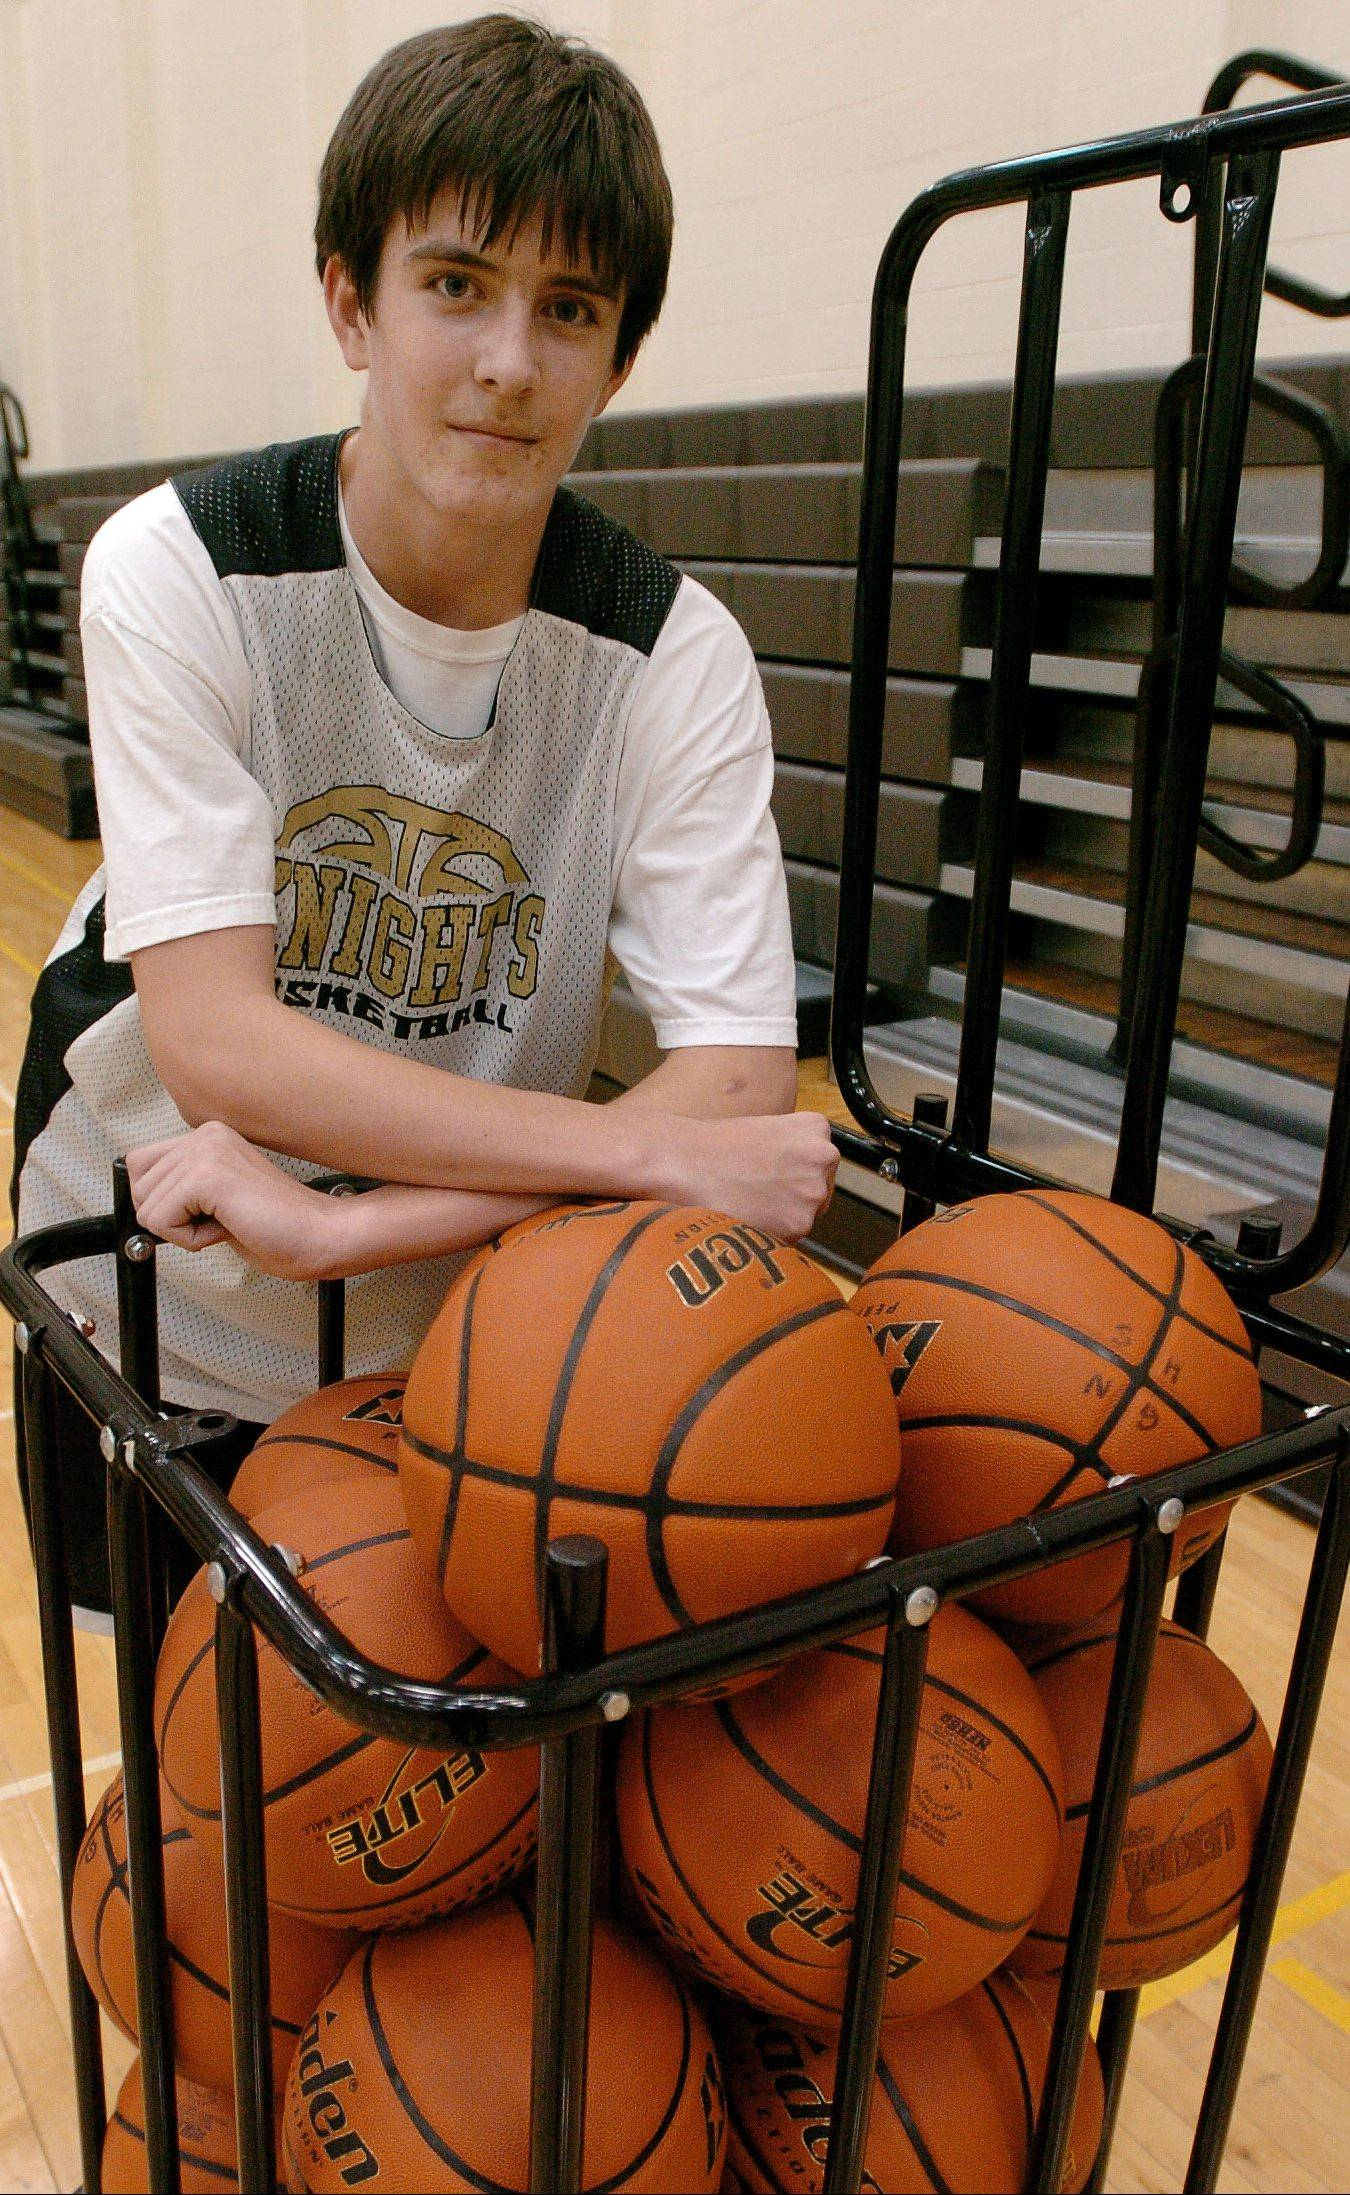 Freshman Aidan Einloth is having a ball getting meaningful varsity playing time for Grayslake North's boys basketball team.